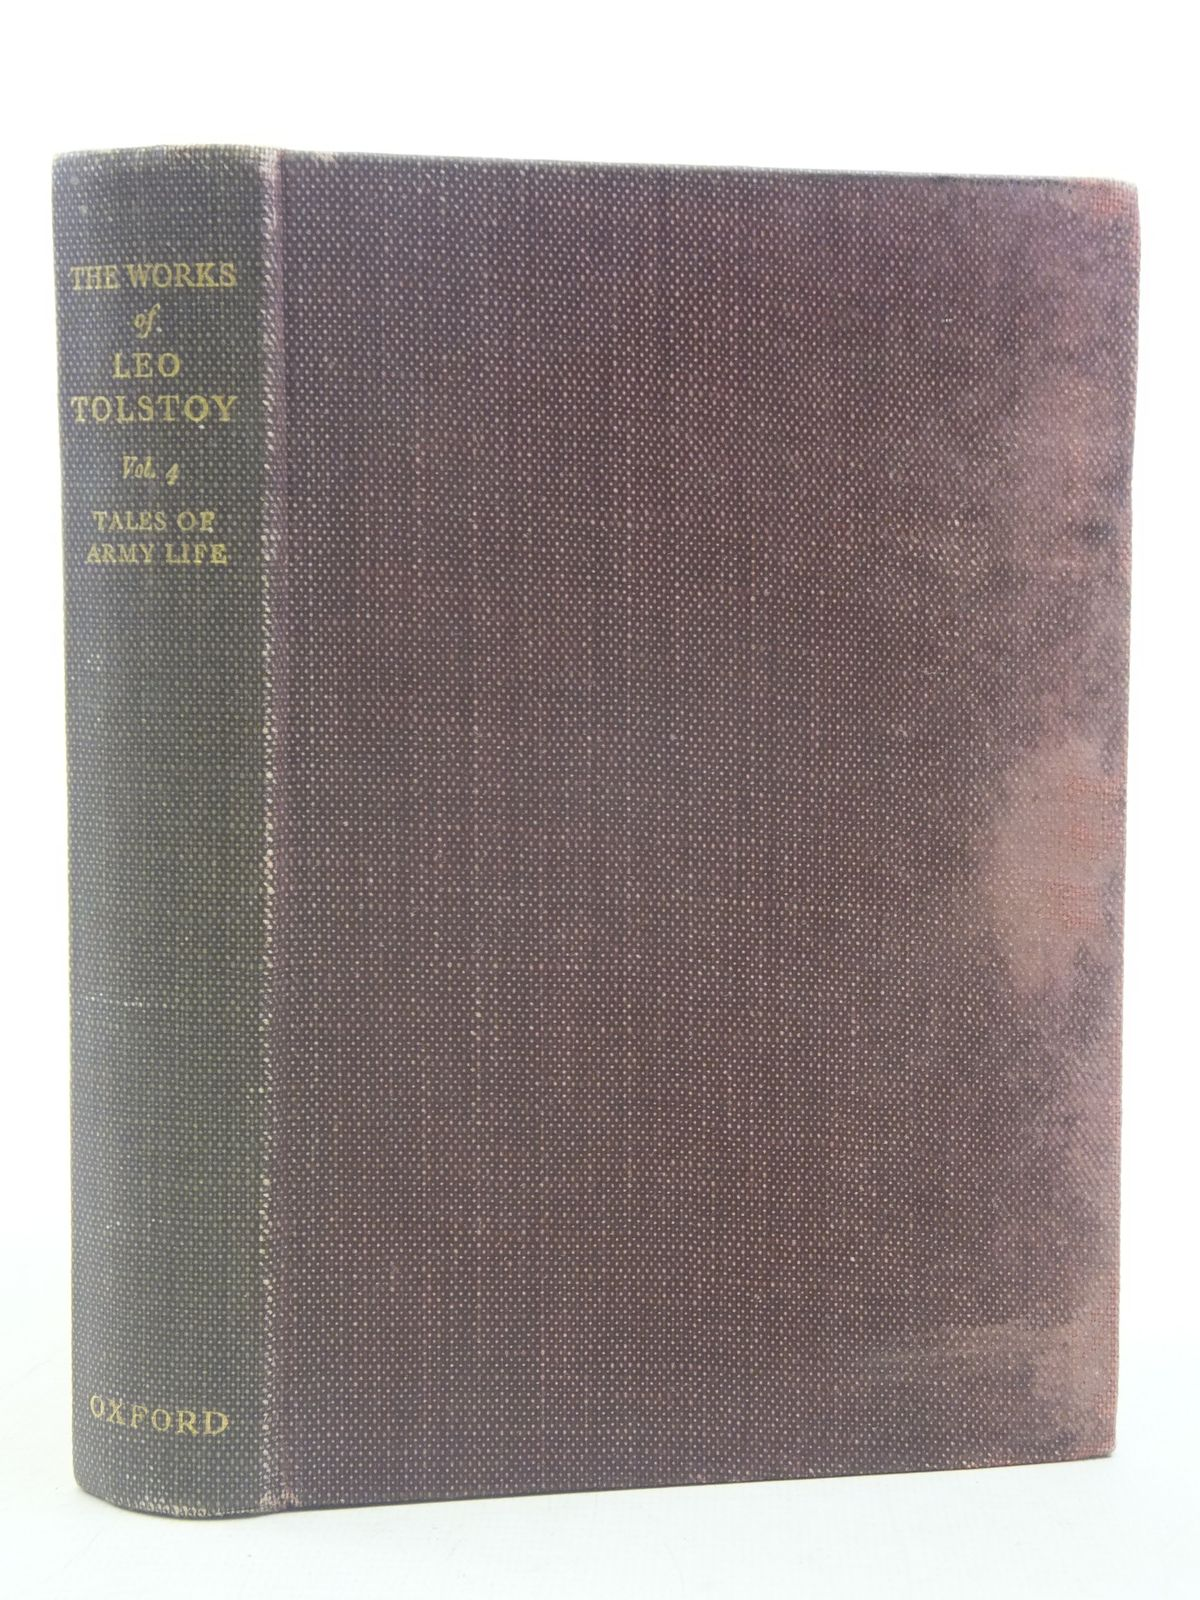 Photo of TALES OF ARMY LIFE written by Tolstoy, Leo published by Oxford University Press (STOCK CODE: 1606064)  for sale by Stella & Rose's Books